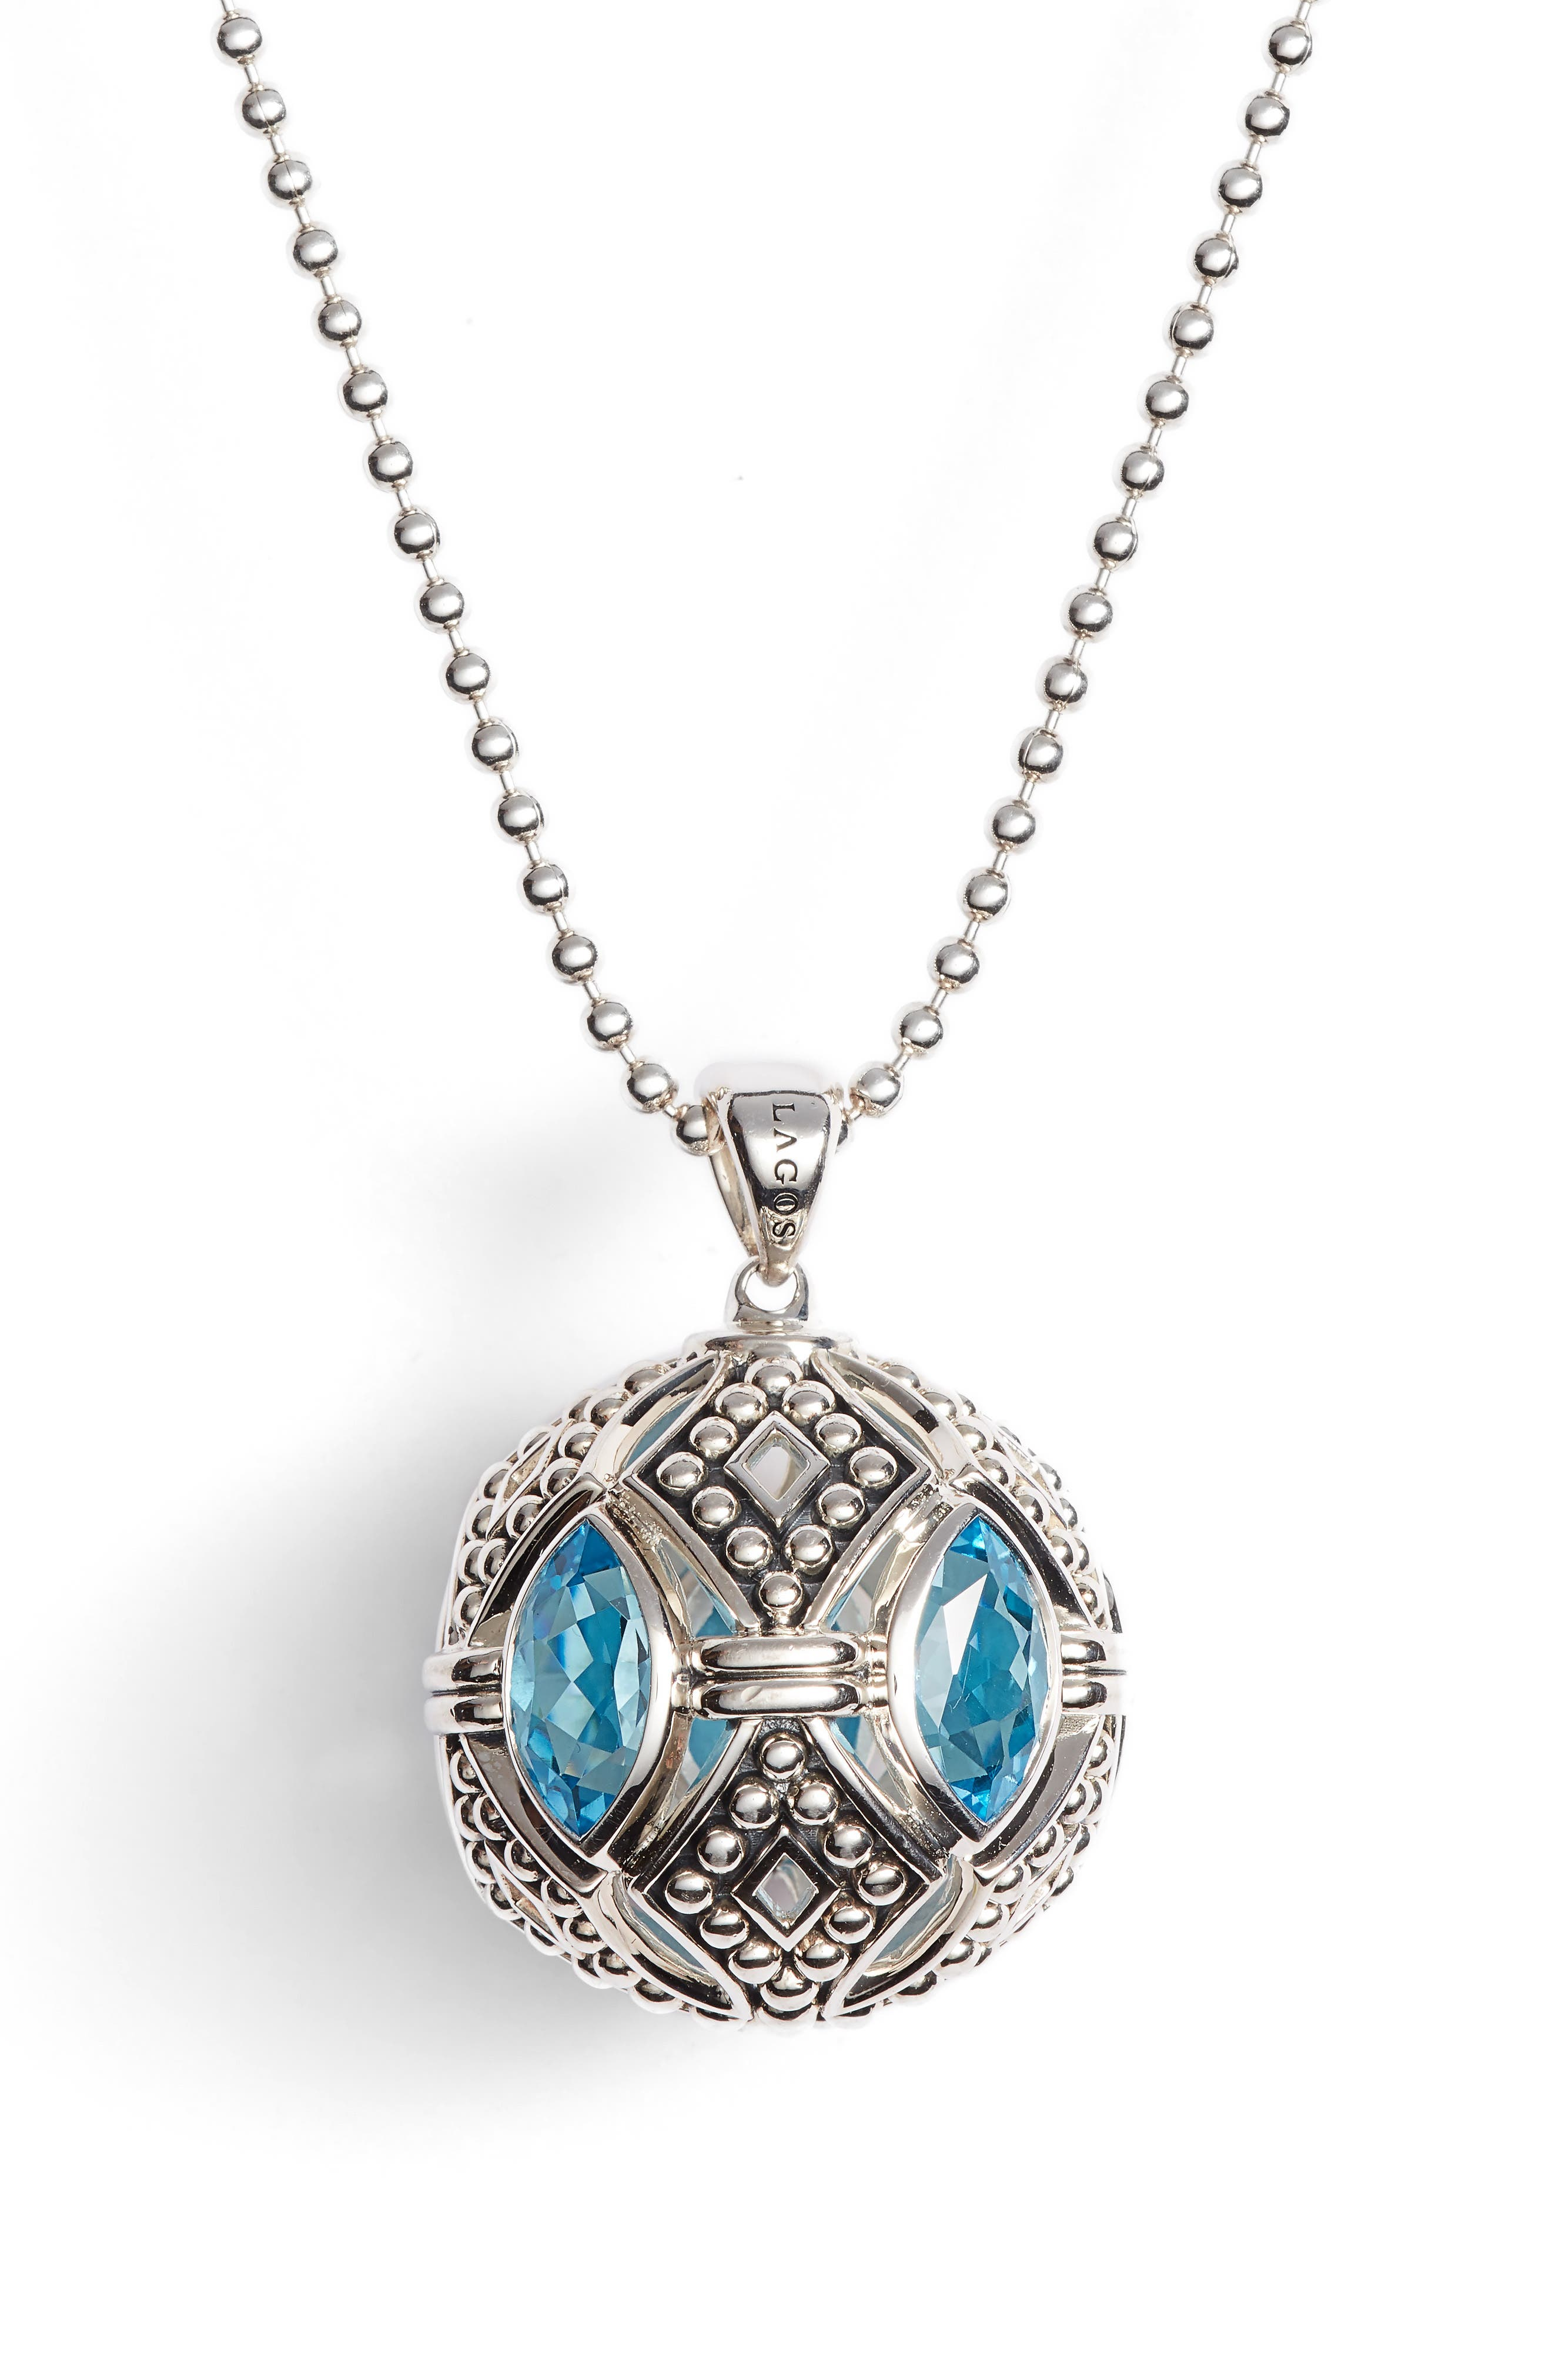 Signature Gifts Marquee Ball Pendant Necklace,                         Main,                         color, Silver/ Blue Topaz